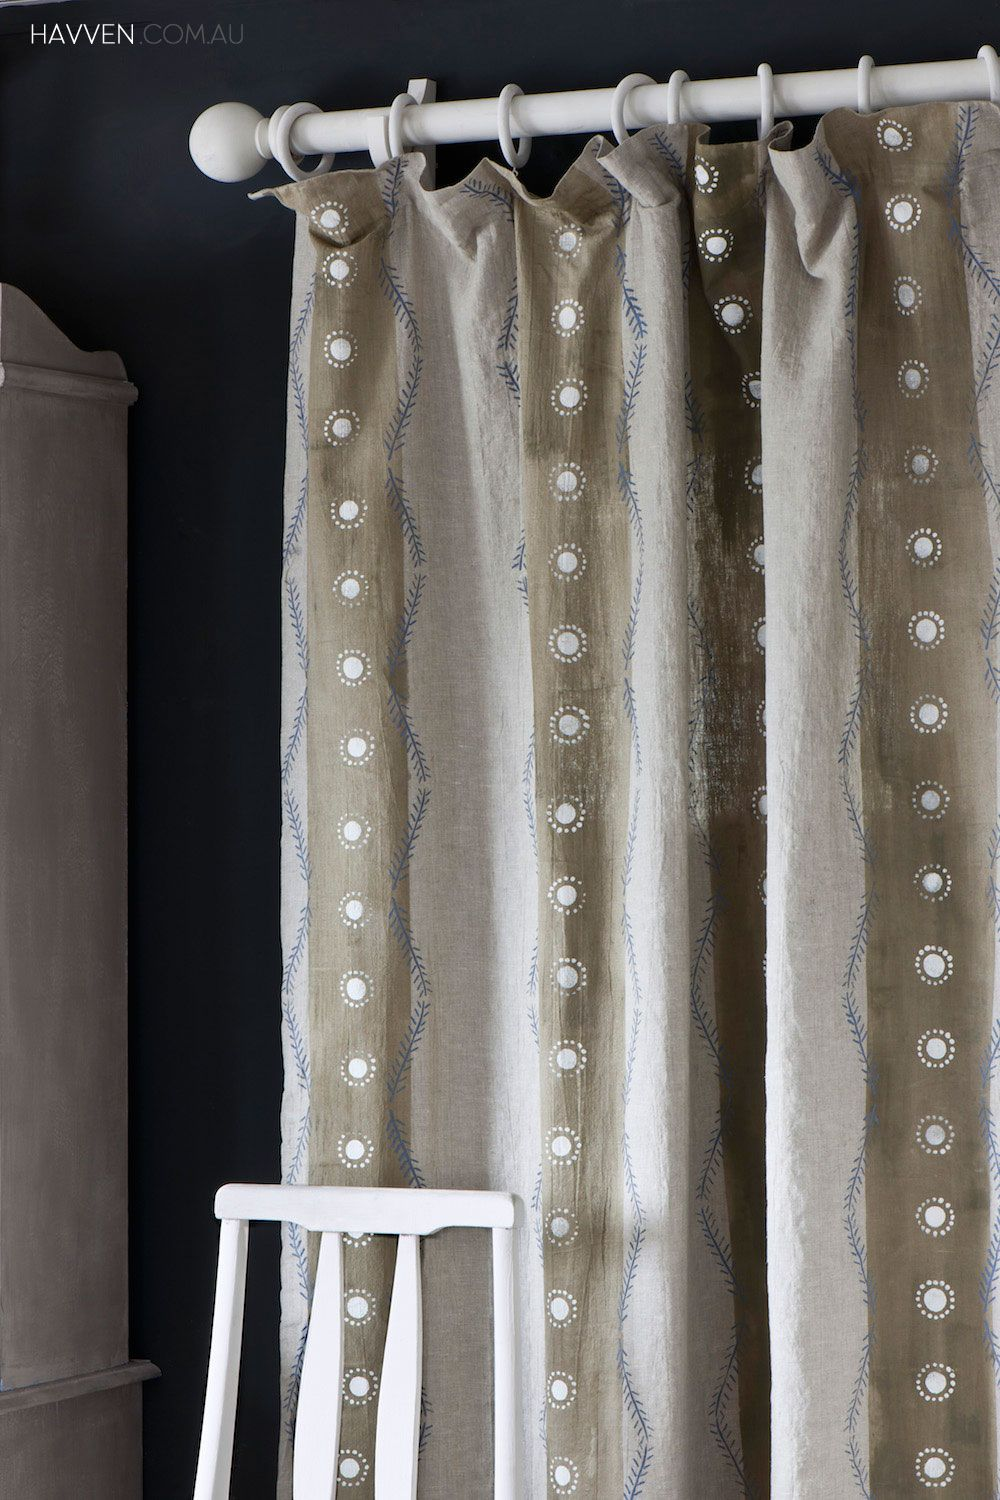 How To Dye And Stencil Curtains Using Chalk Paint By Annie Sloan